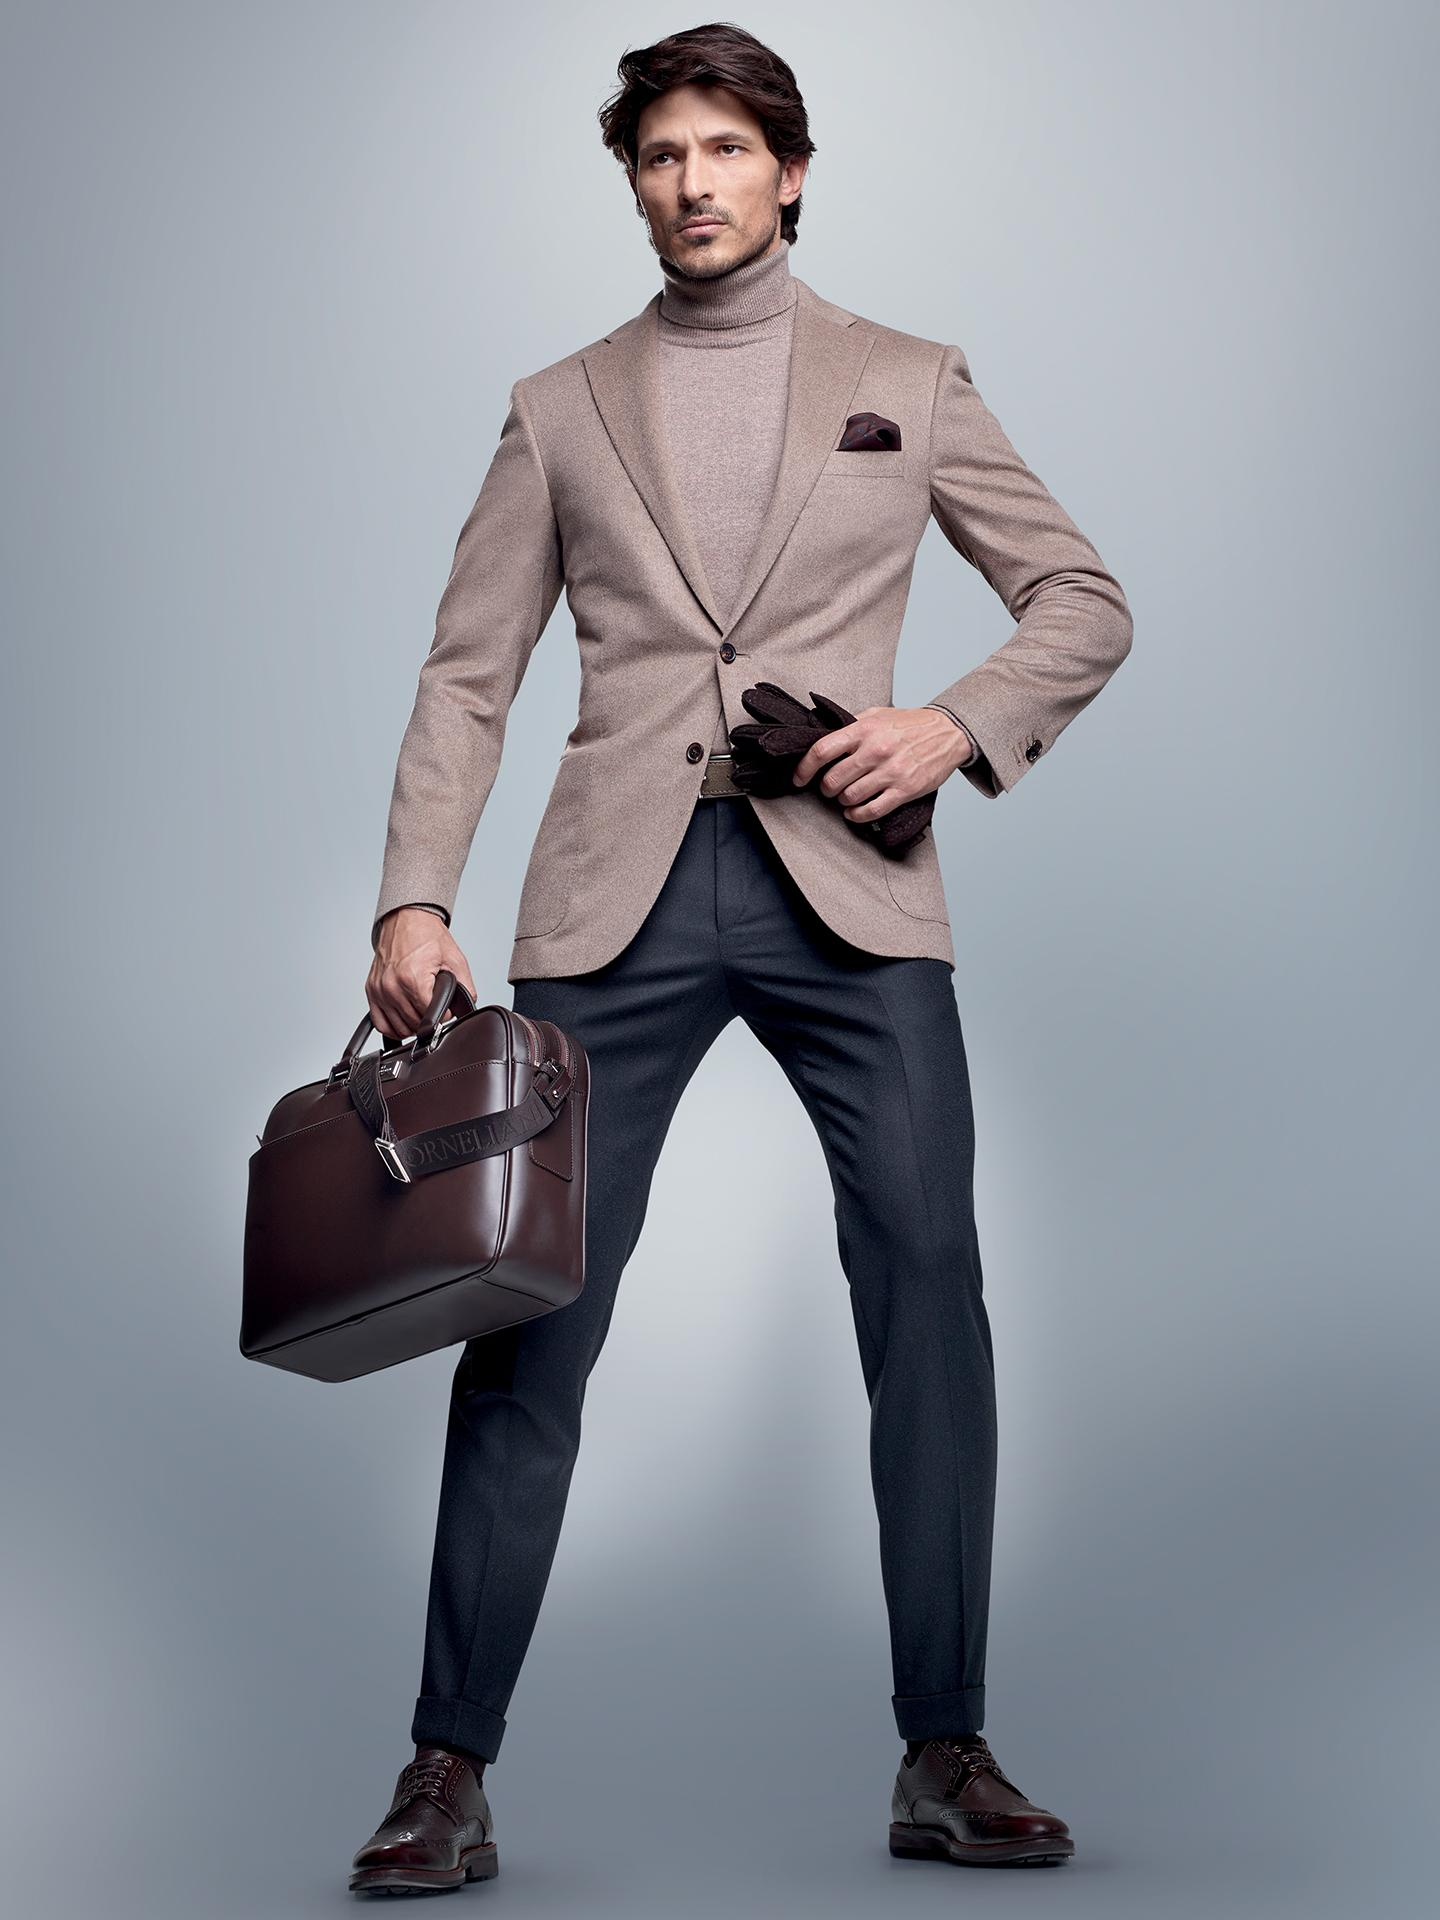 Andres Velencoso Segura Dons Elegant Styles for Corneliani Fall/Winter 2014 Lookbook